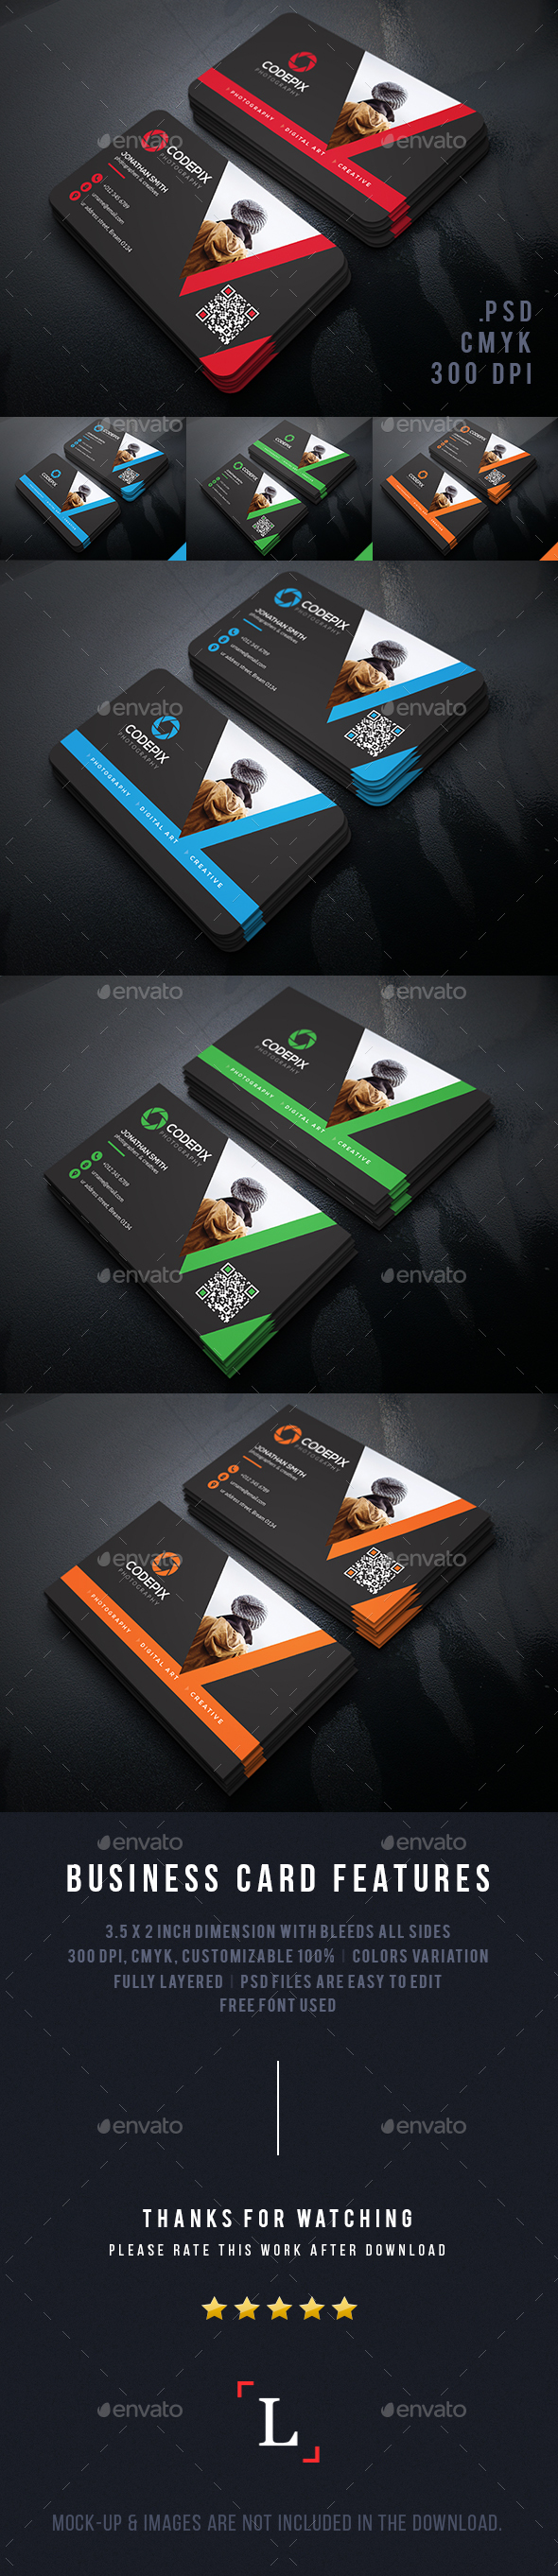 Personal Photography Business Cards - Business Cards Print Templates